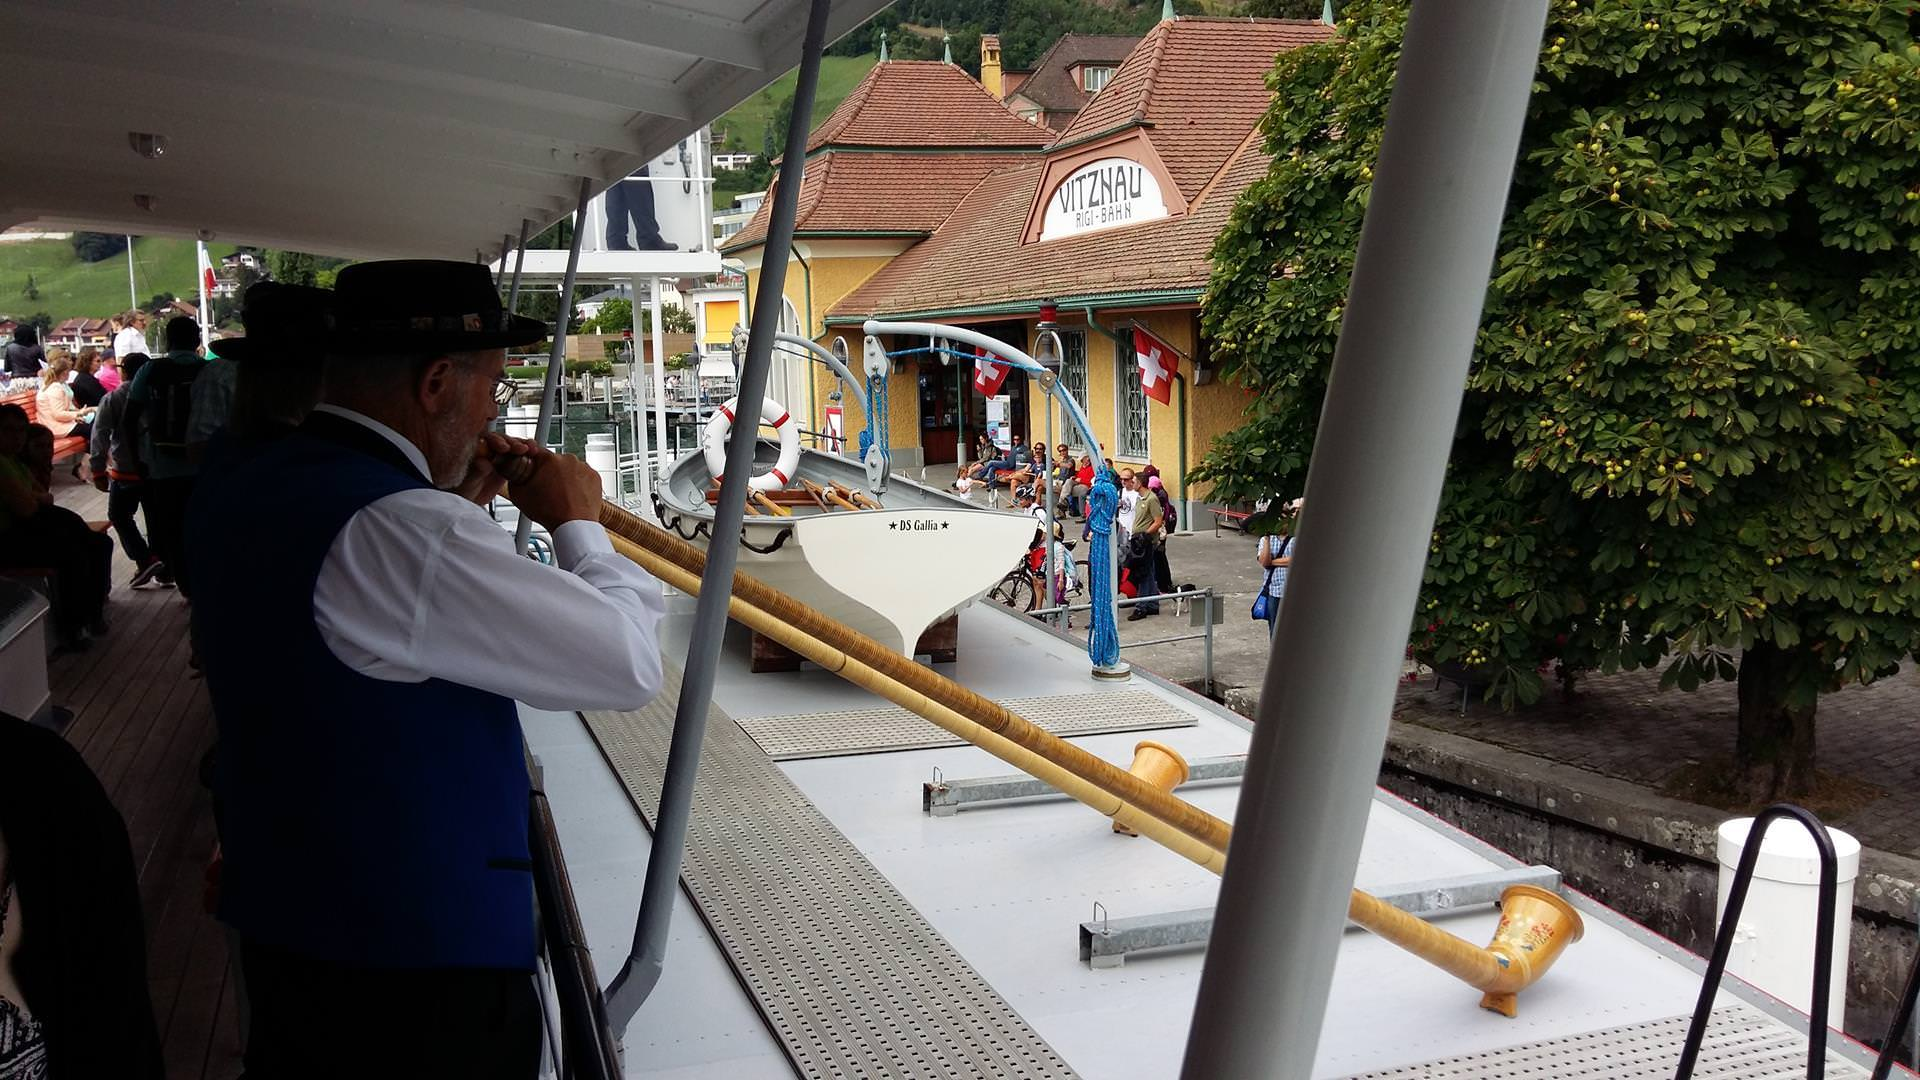 Just after boarding the boat. I believe they were playing the Swiss national anthem on their Alphorns...